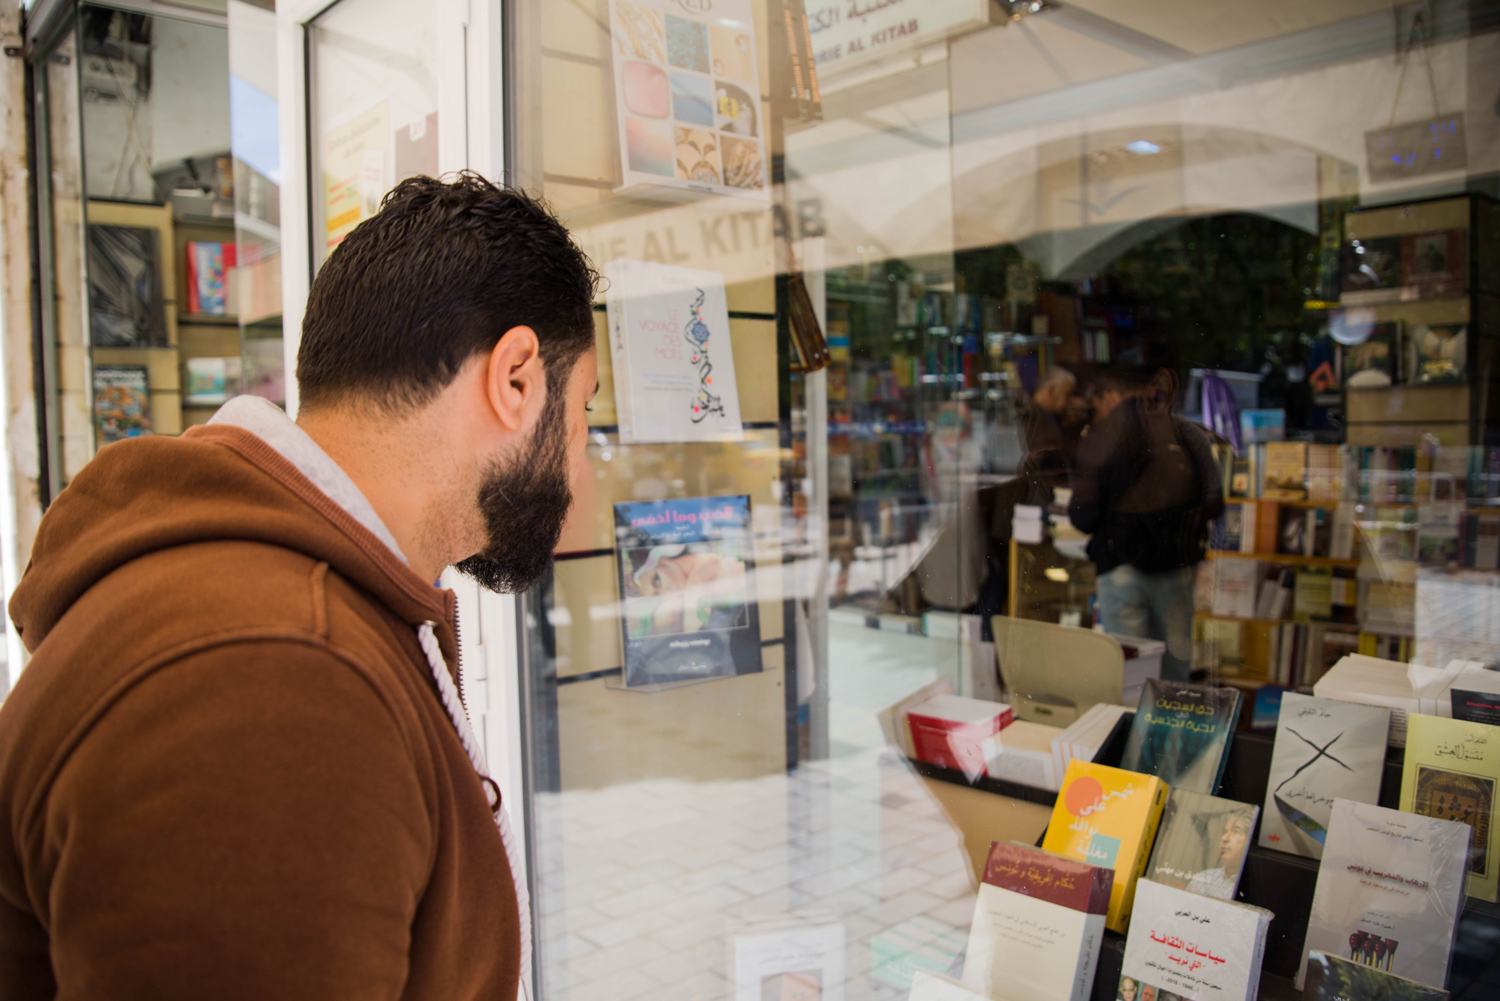 Hosam Athani looks at a copy of Sun on Closed Windows in a bookstore in Tunis.